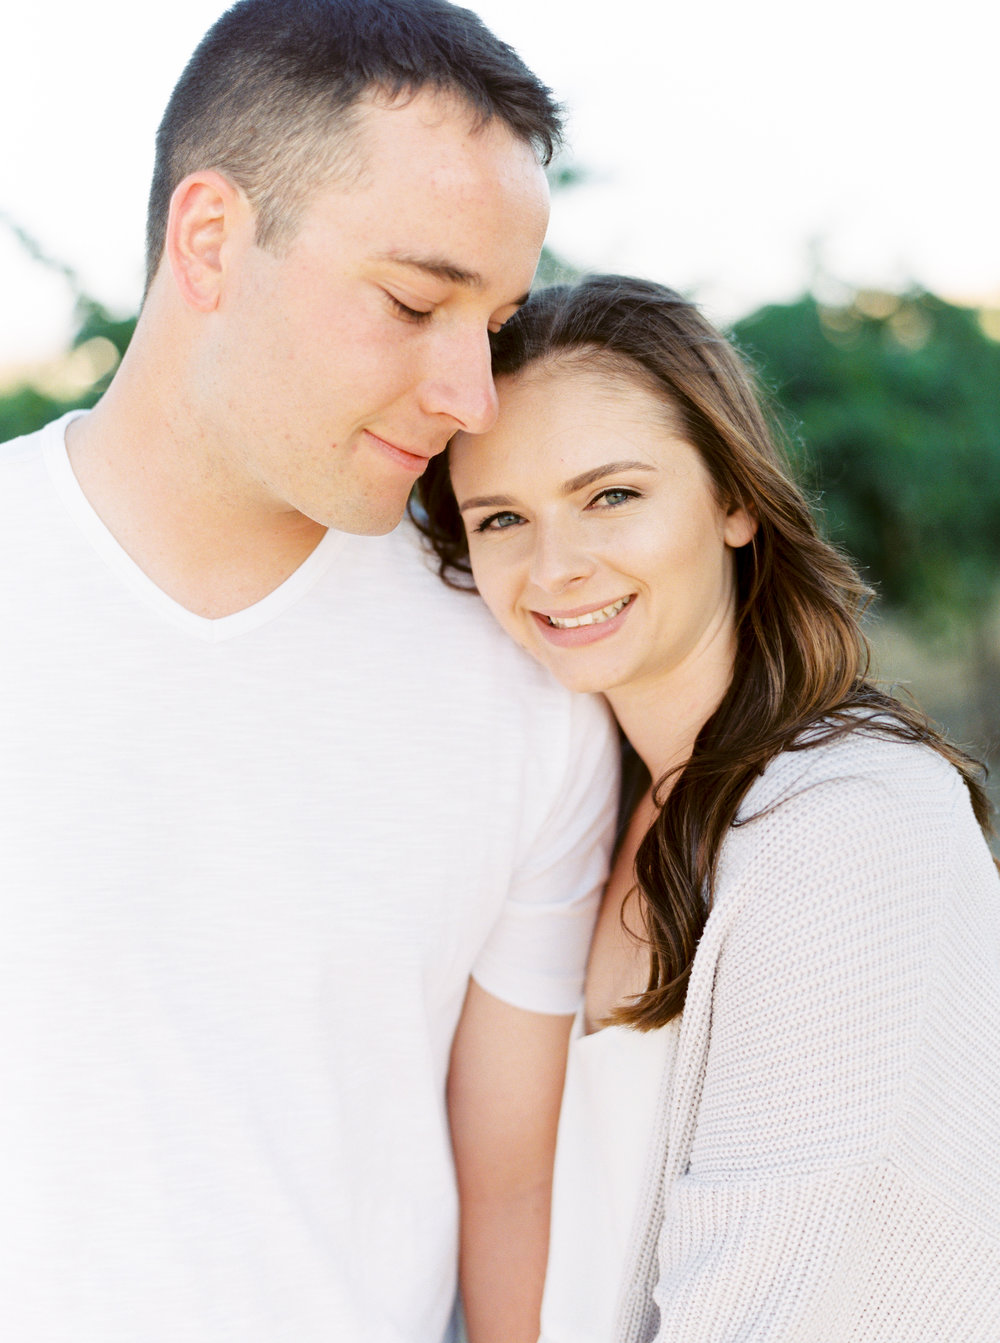 del-valle-livermore-engagement-2.jpg